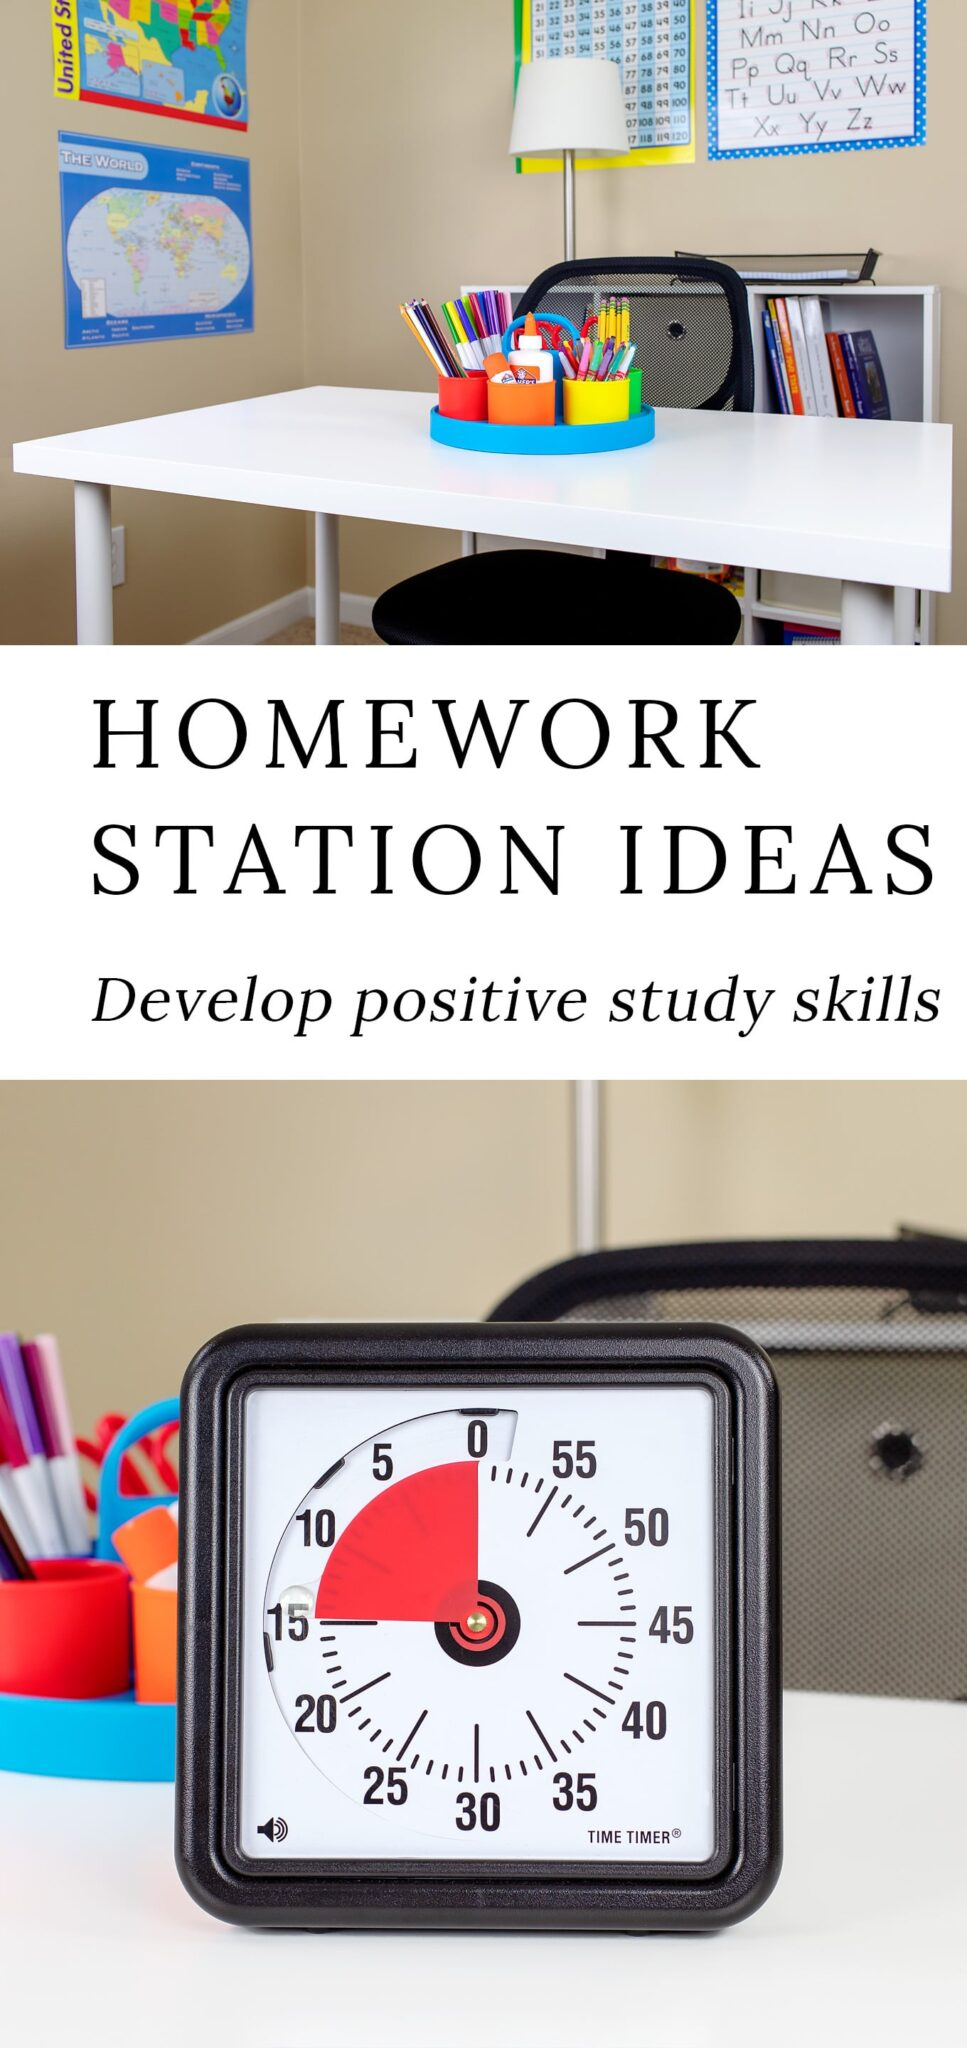 Invitation to Save This Post about Homework Station Ideas on Pinterest